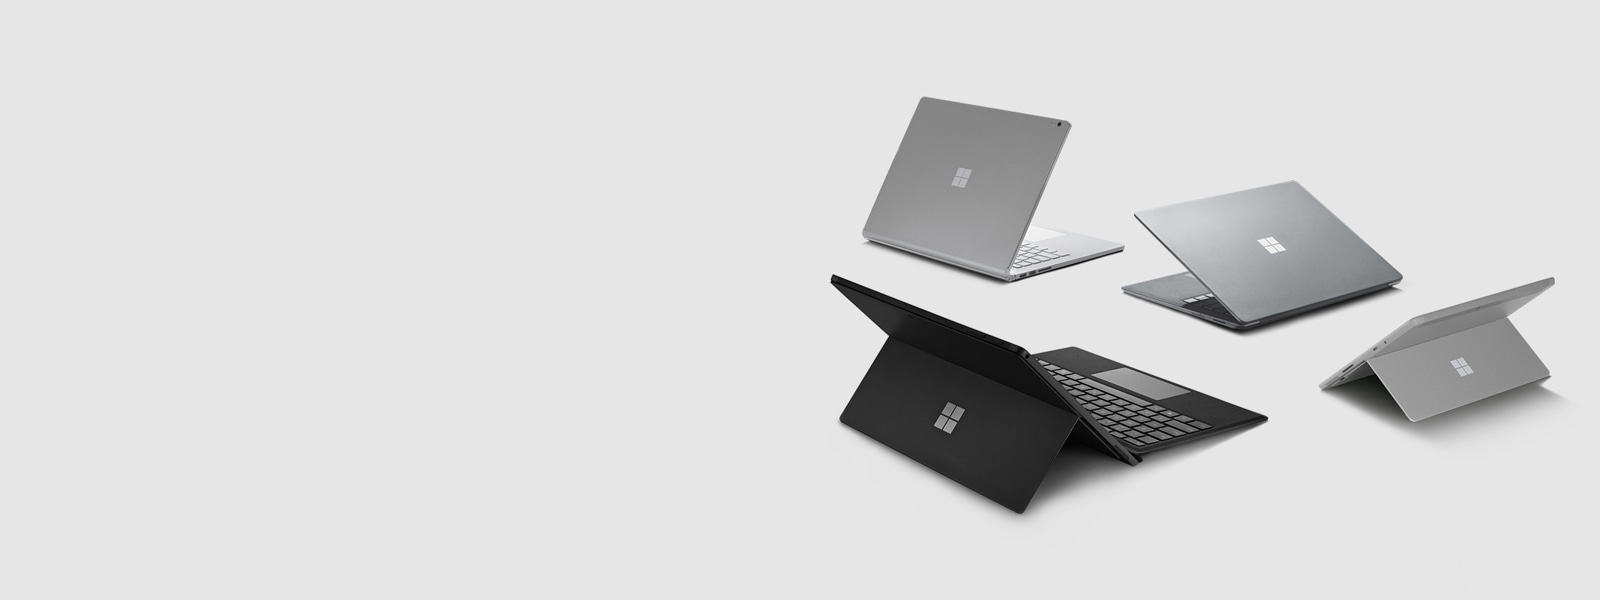 Surface Pro 6, Surface Laptop 2, Surface Book 2, Surface Go